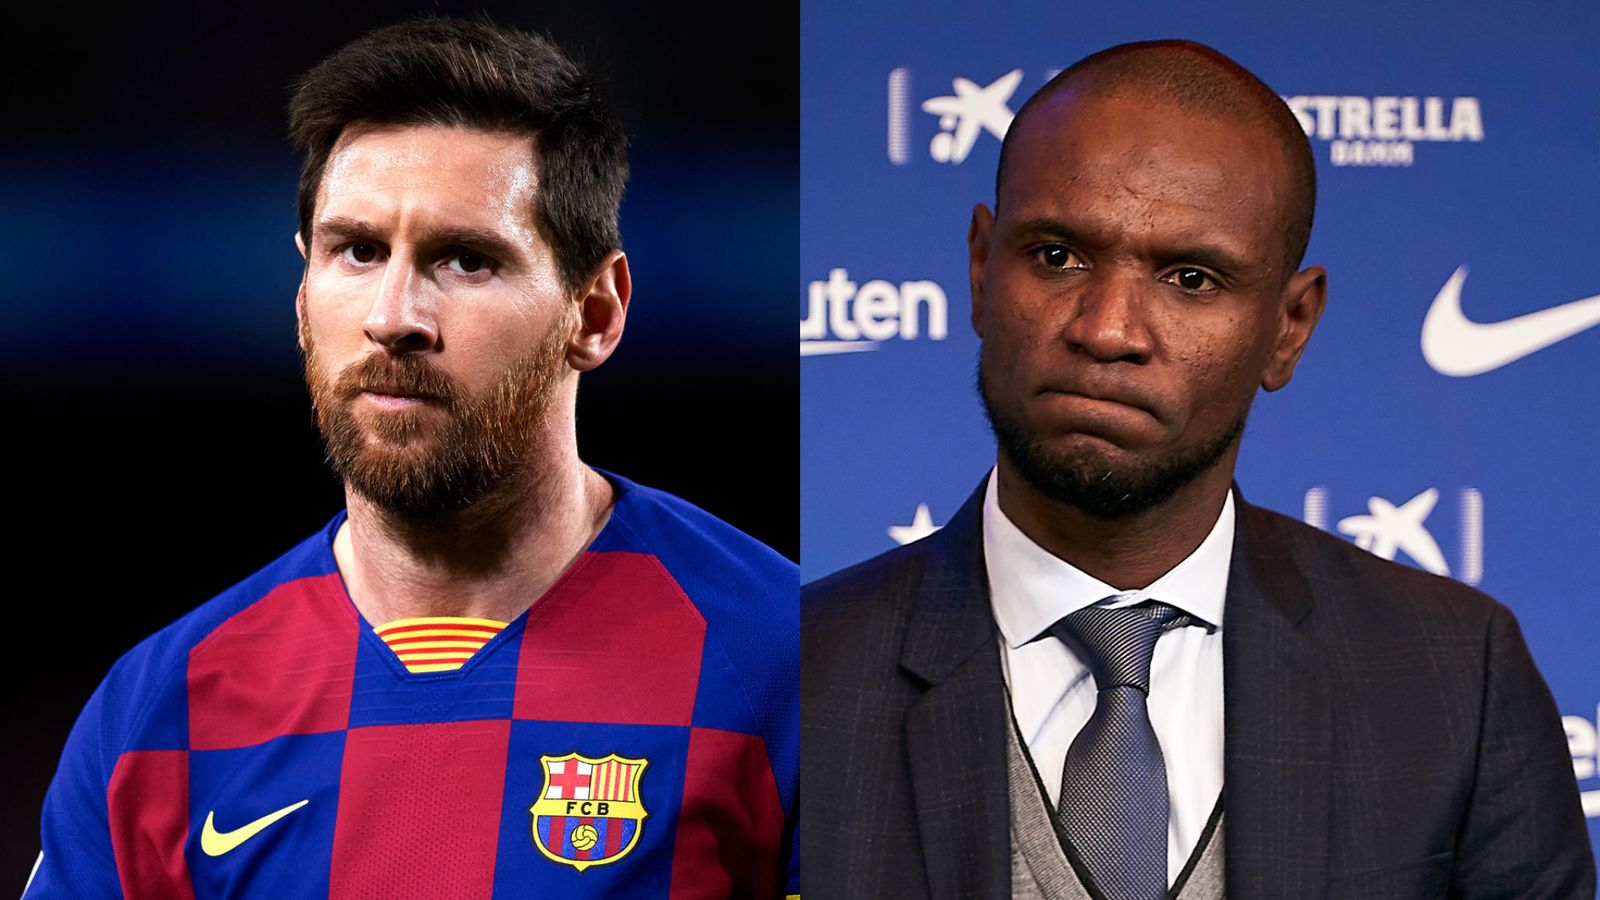 Messi and Abidal